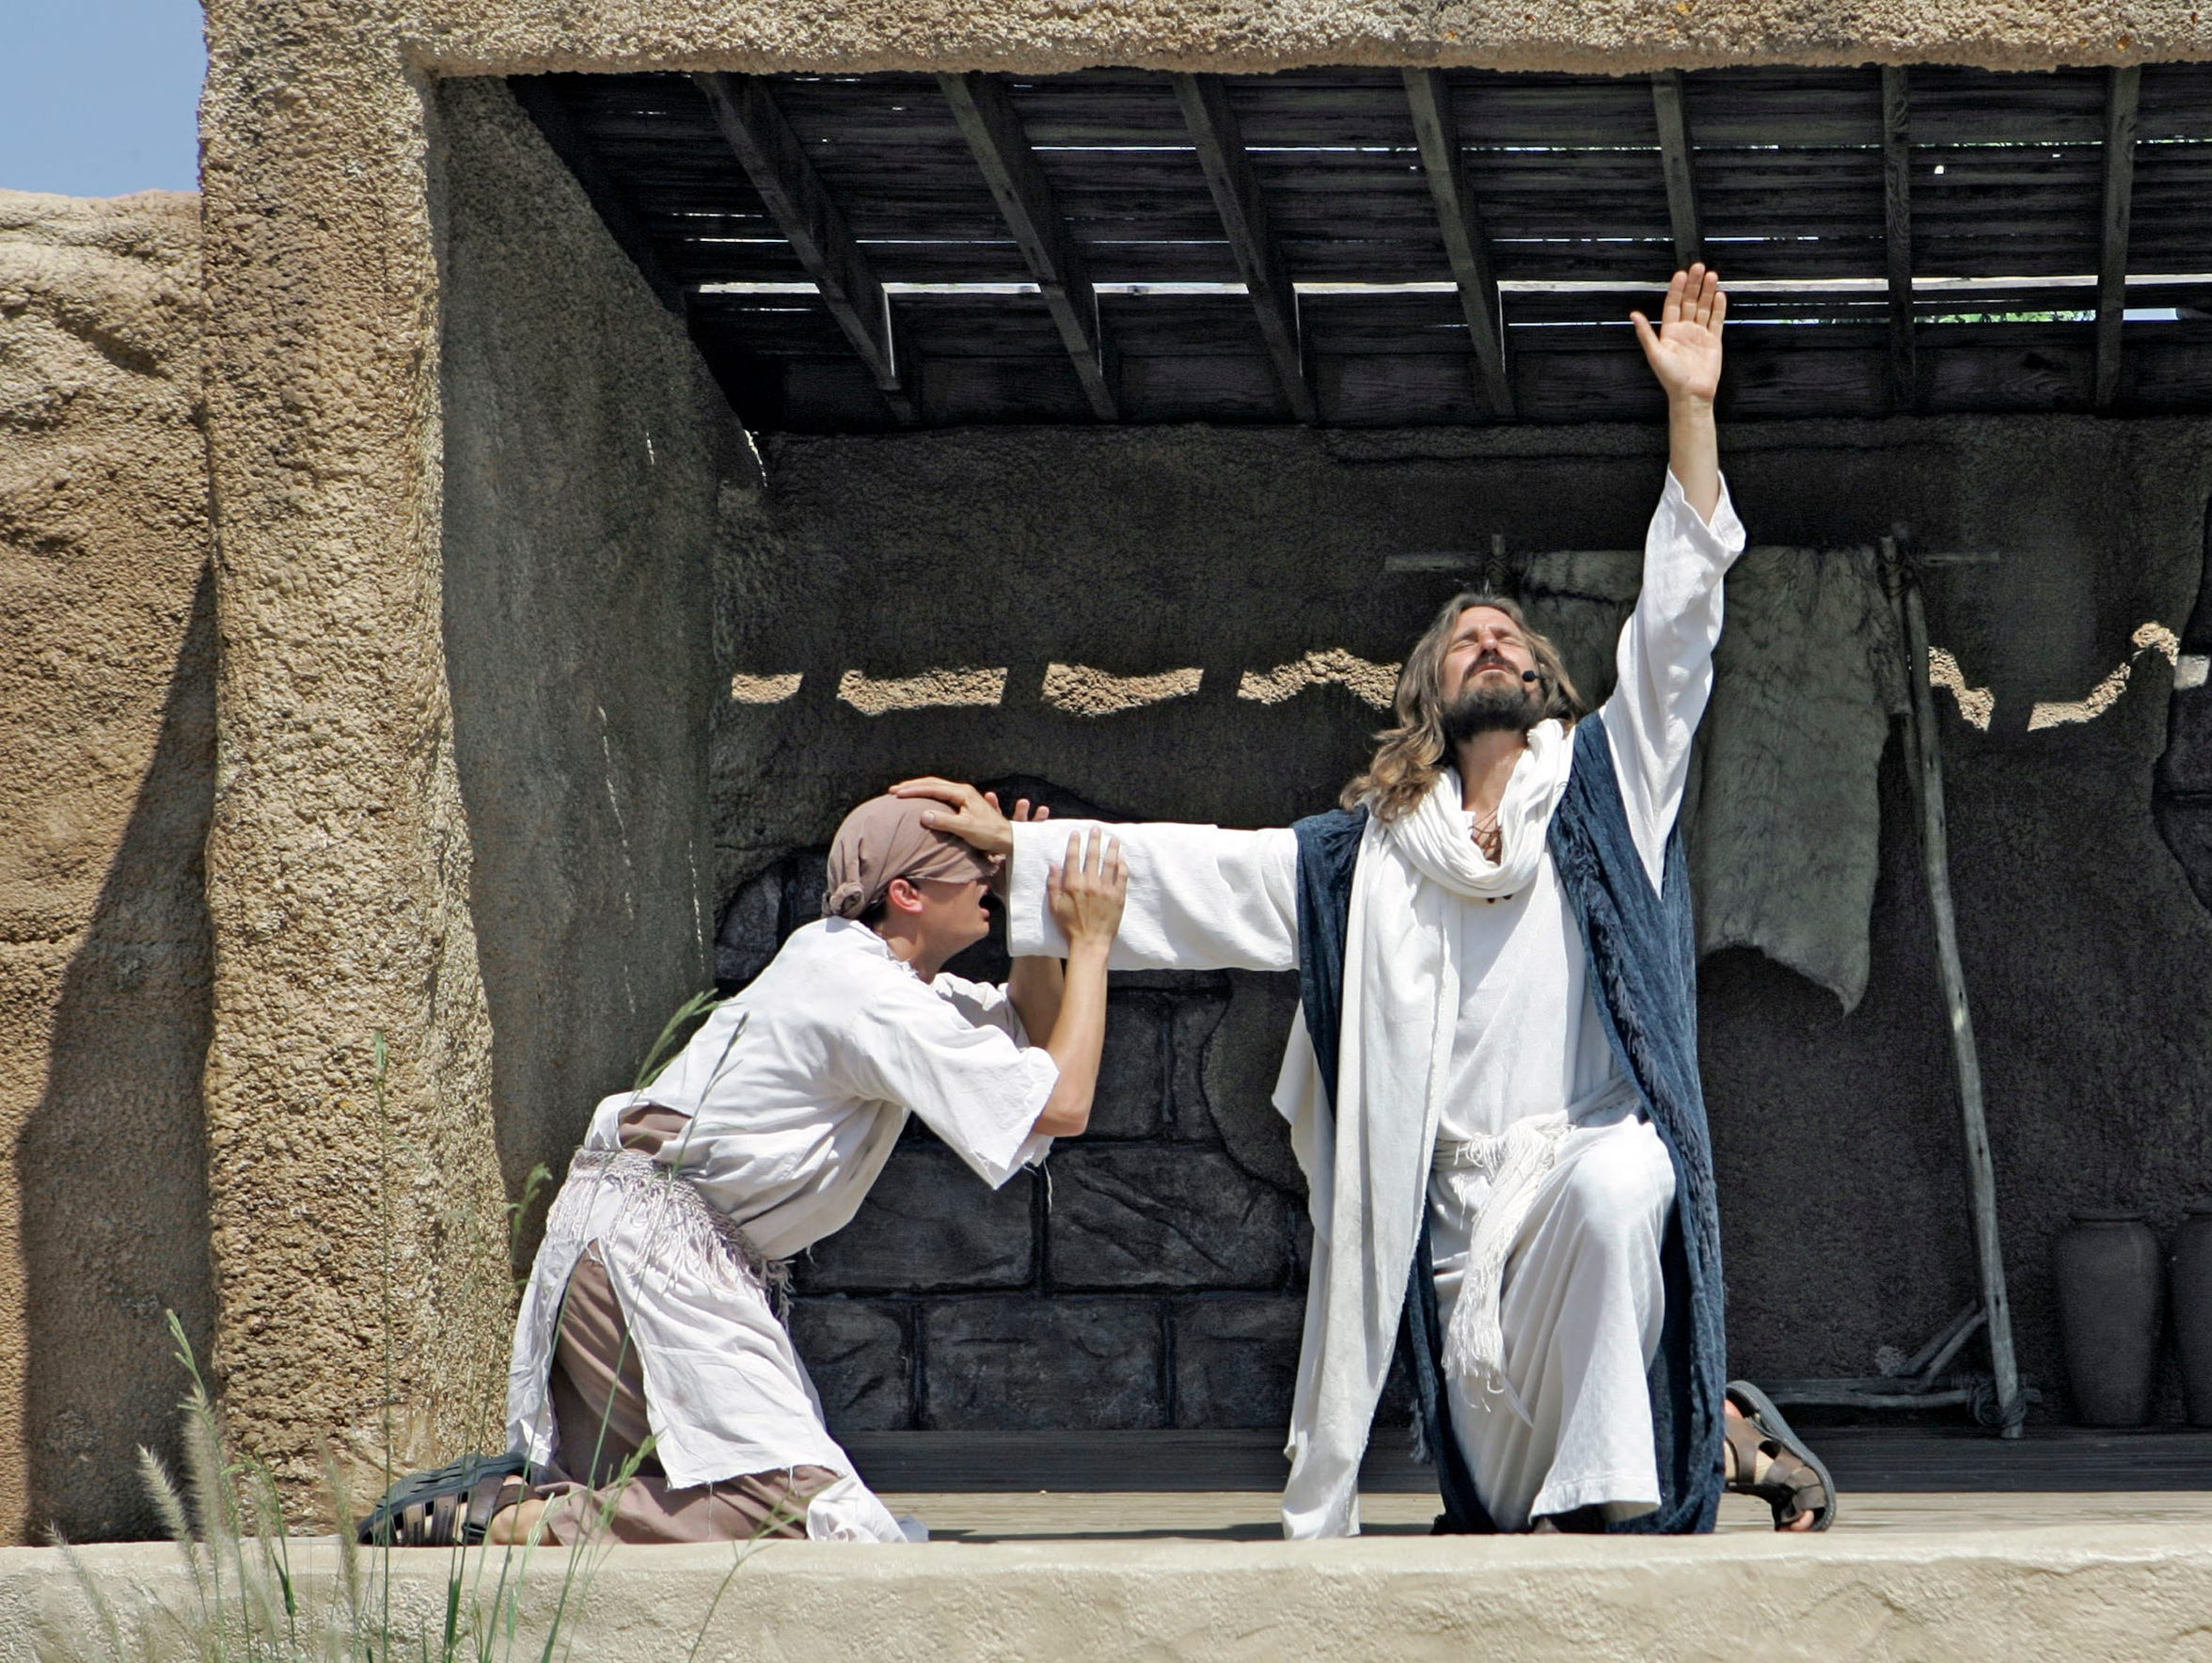 Les Cheveldayoff (right) portrays Jesus during a performance